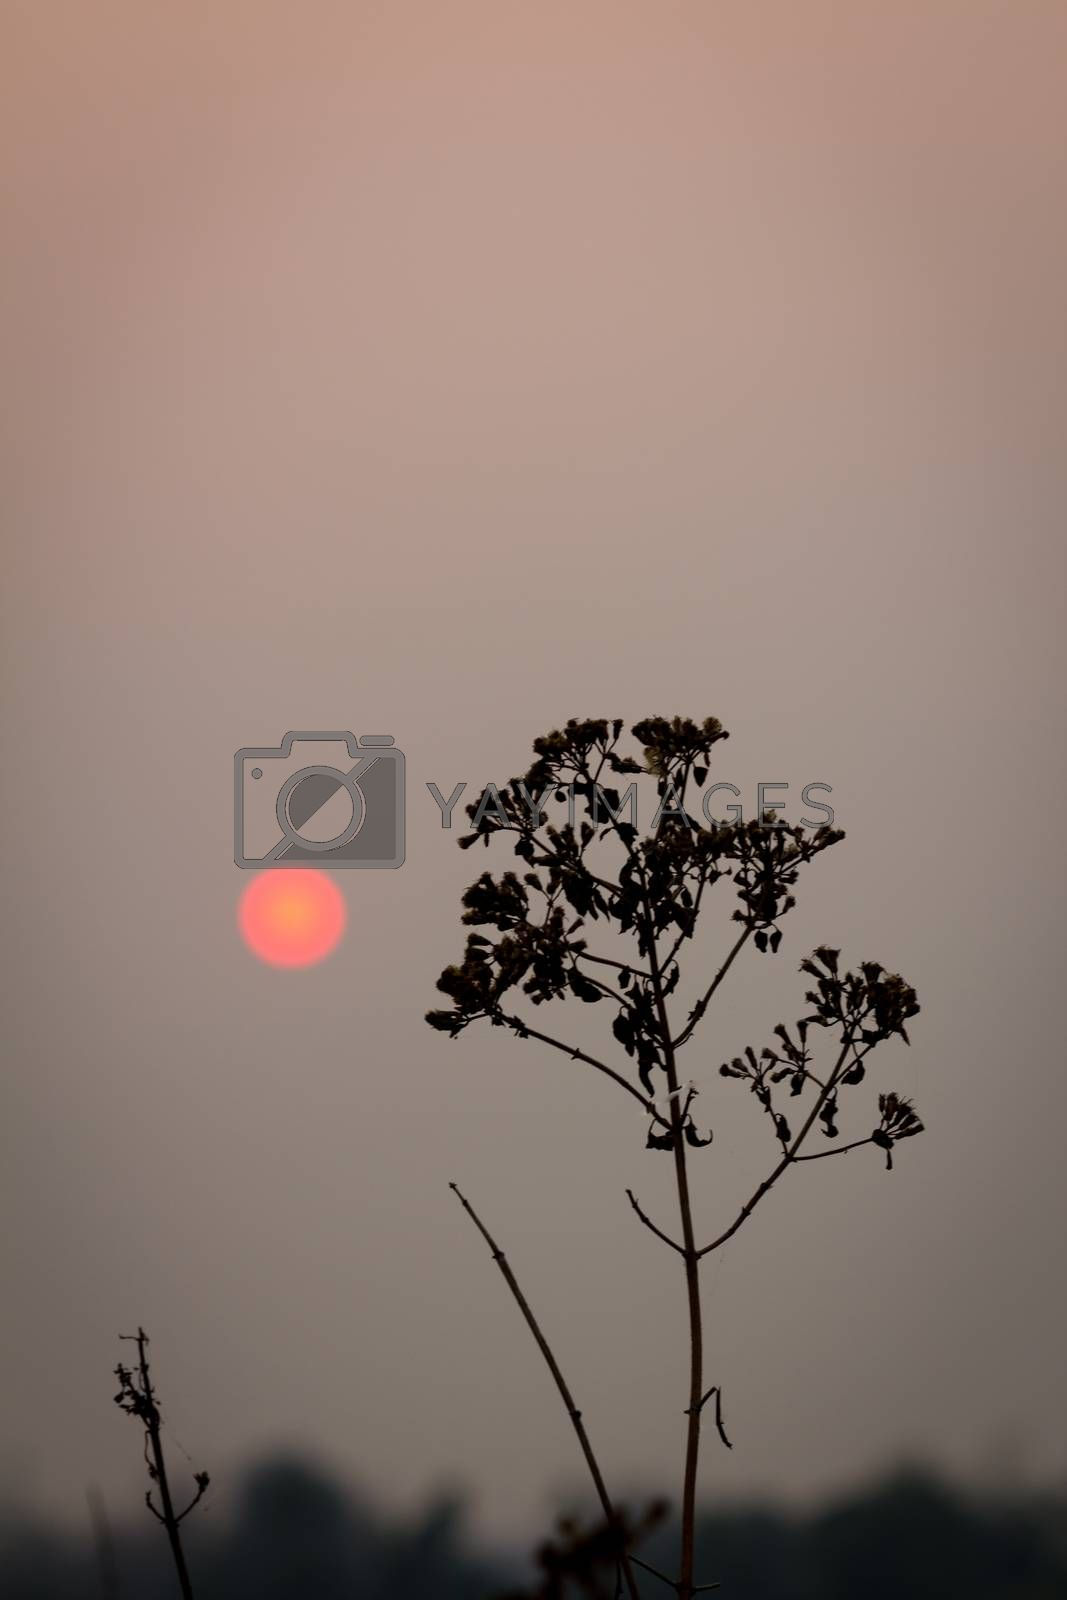 silhouette plant on a background in the evening.